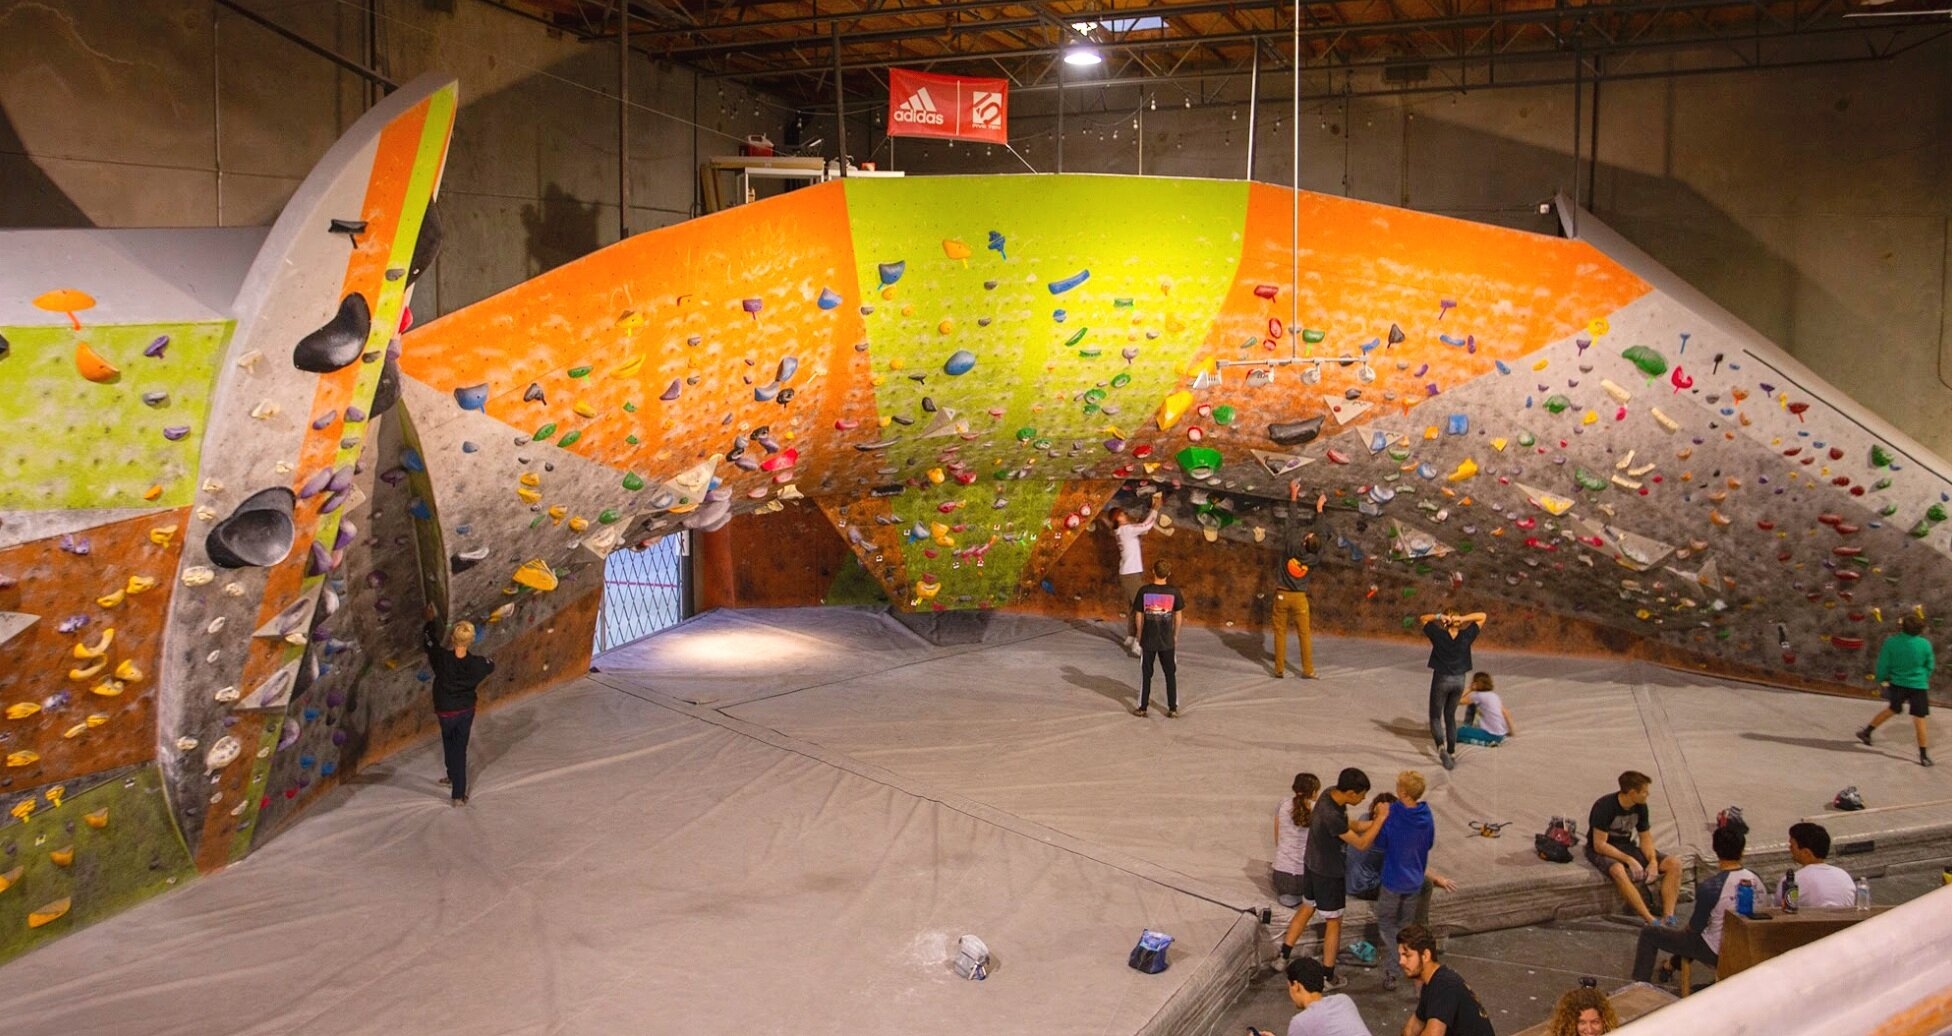 Indoor Rock Climbing Bouldering In San Diego The Wall Climbing Gym